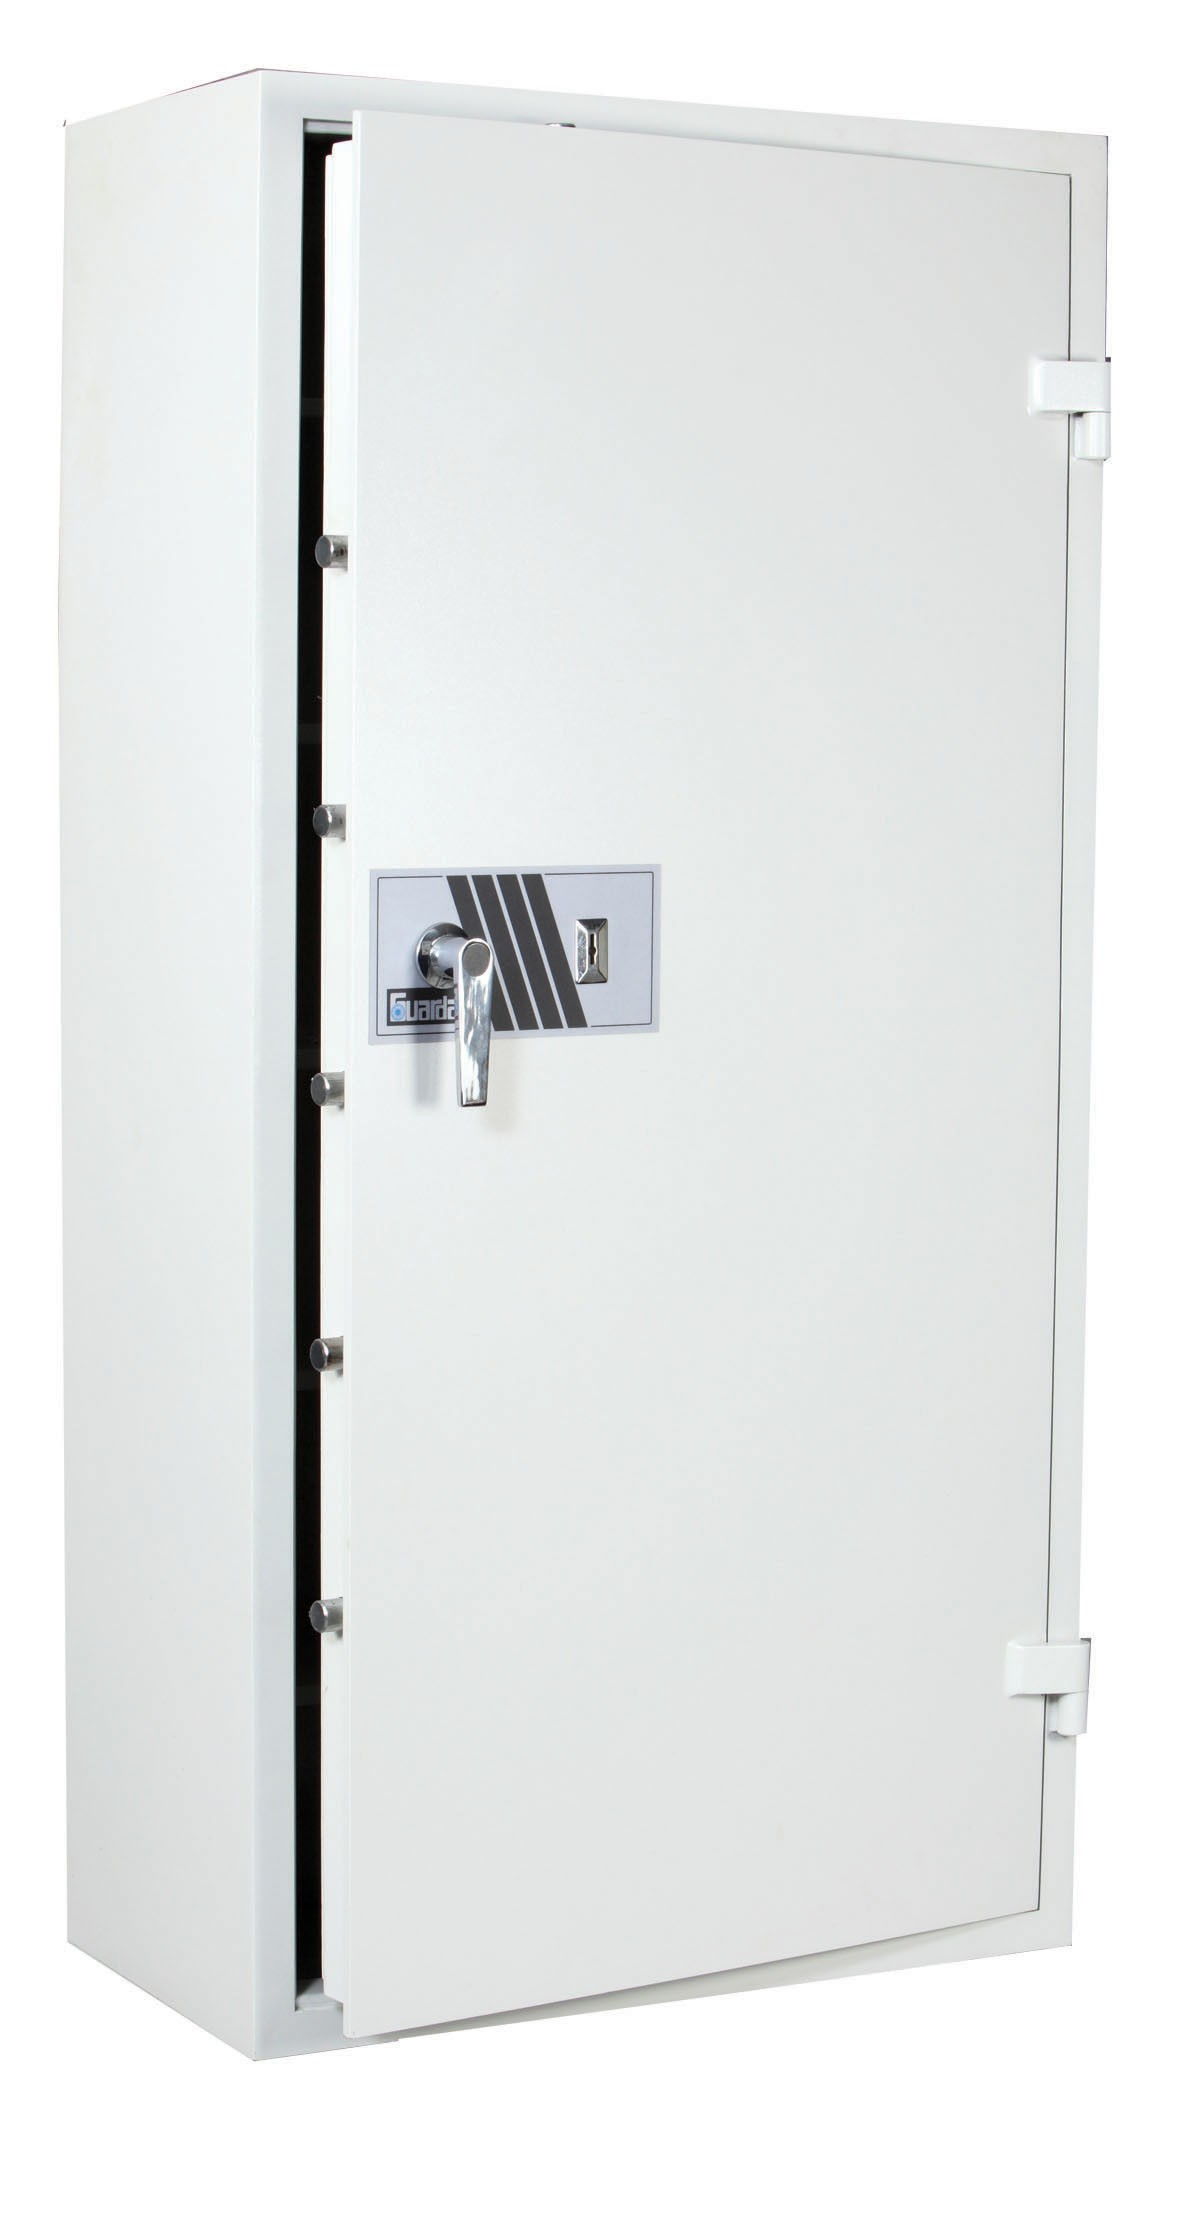 Dsk Doors Guardall Drug G Dsk 4 K City Safes